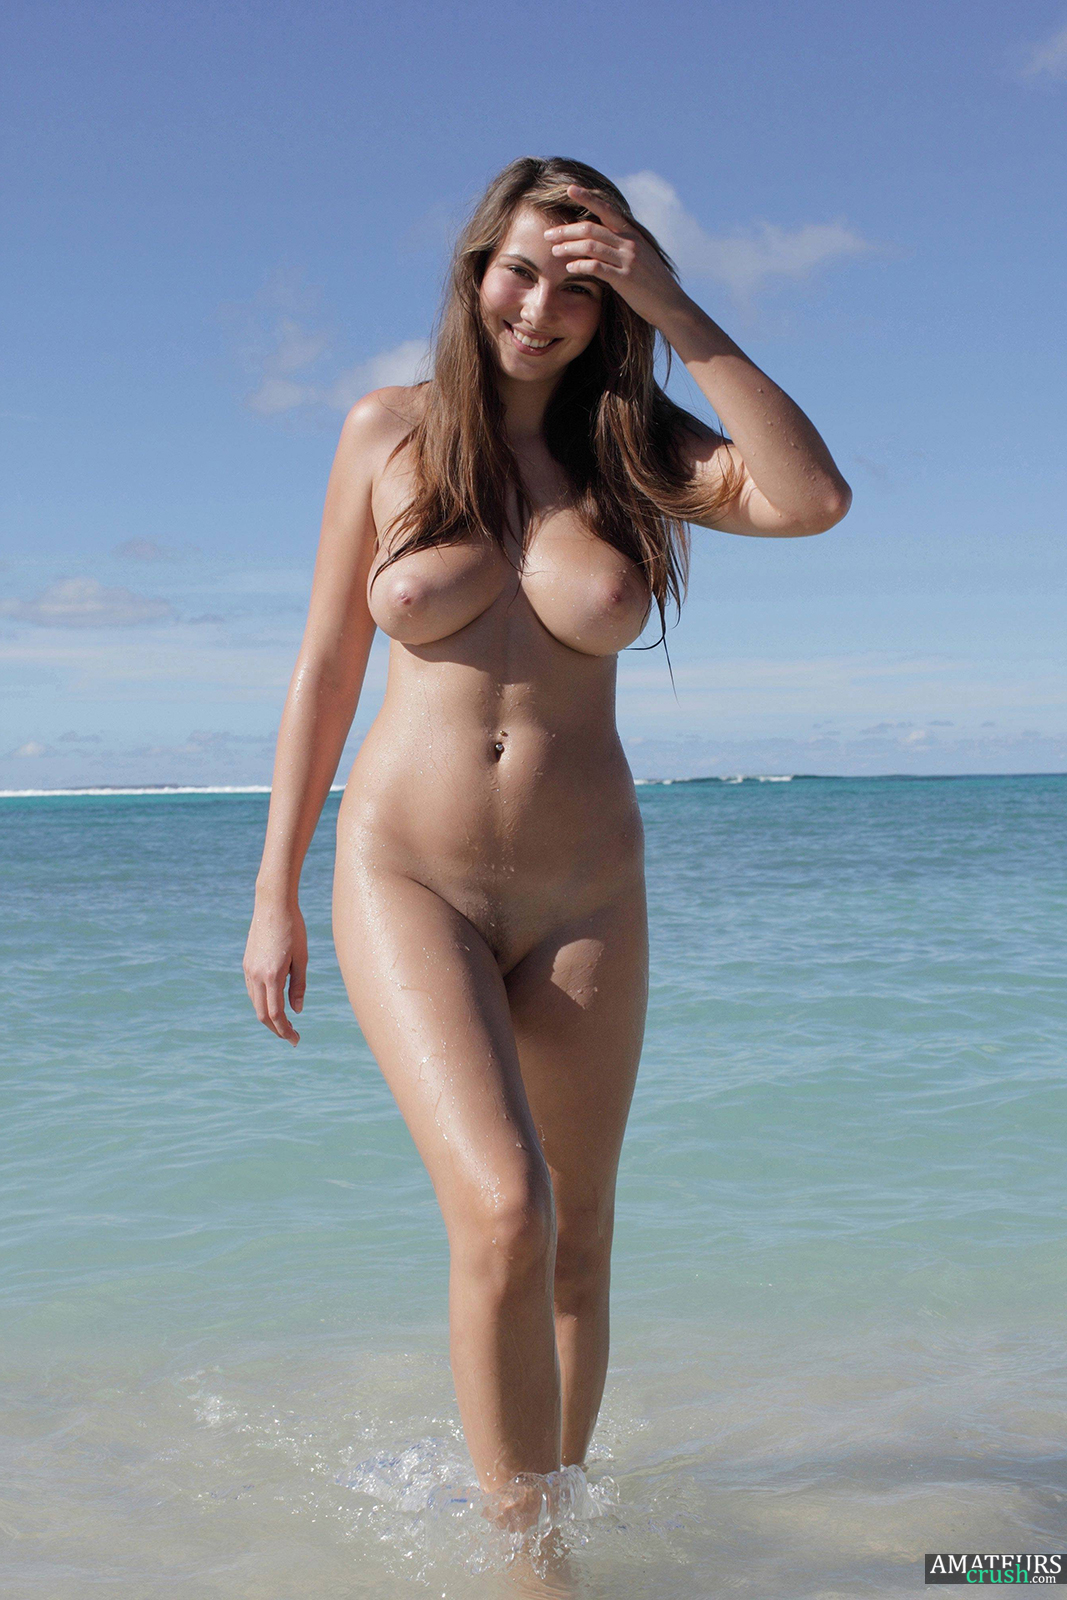 Pictures of naked girls at the beach